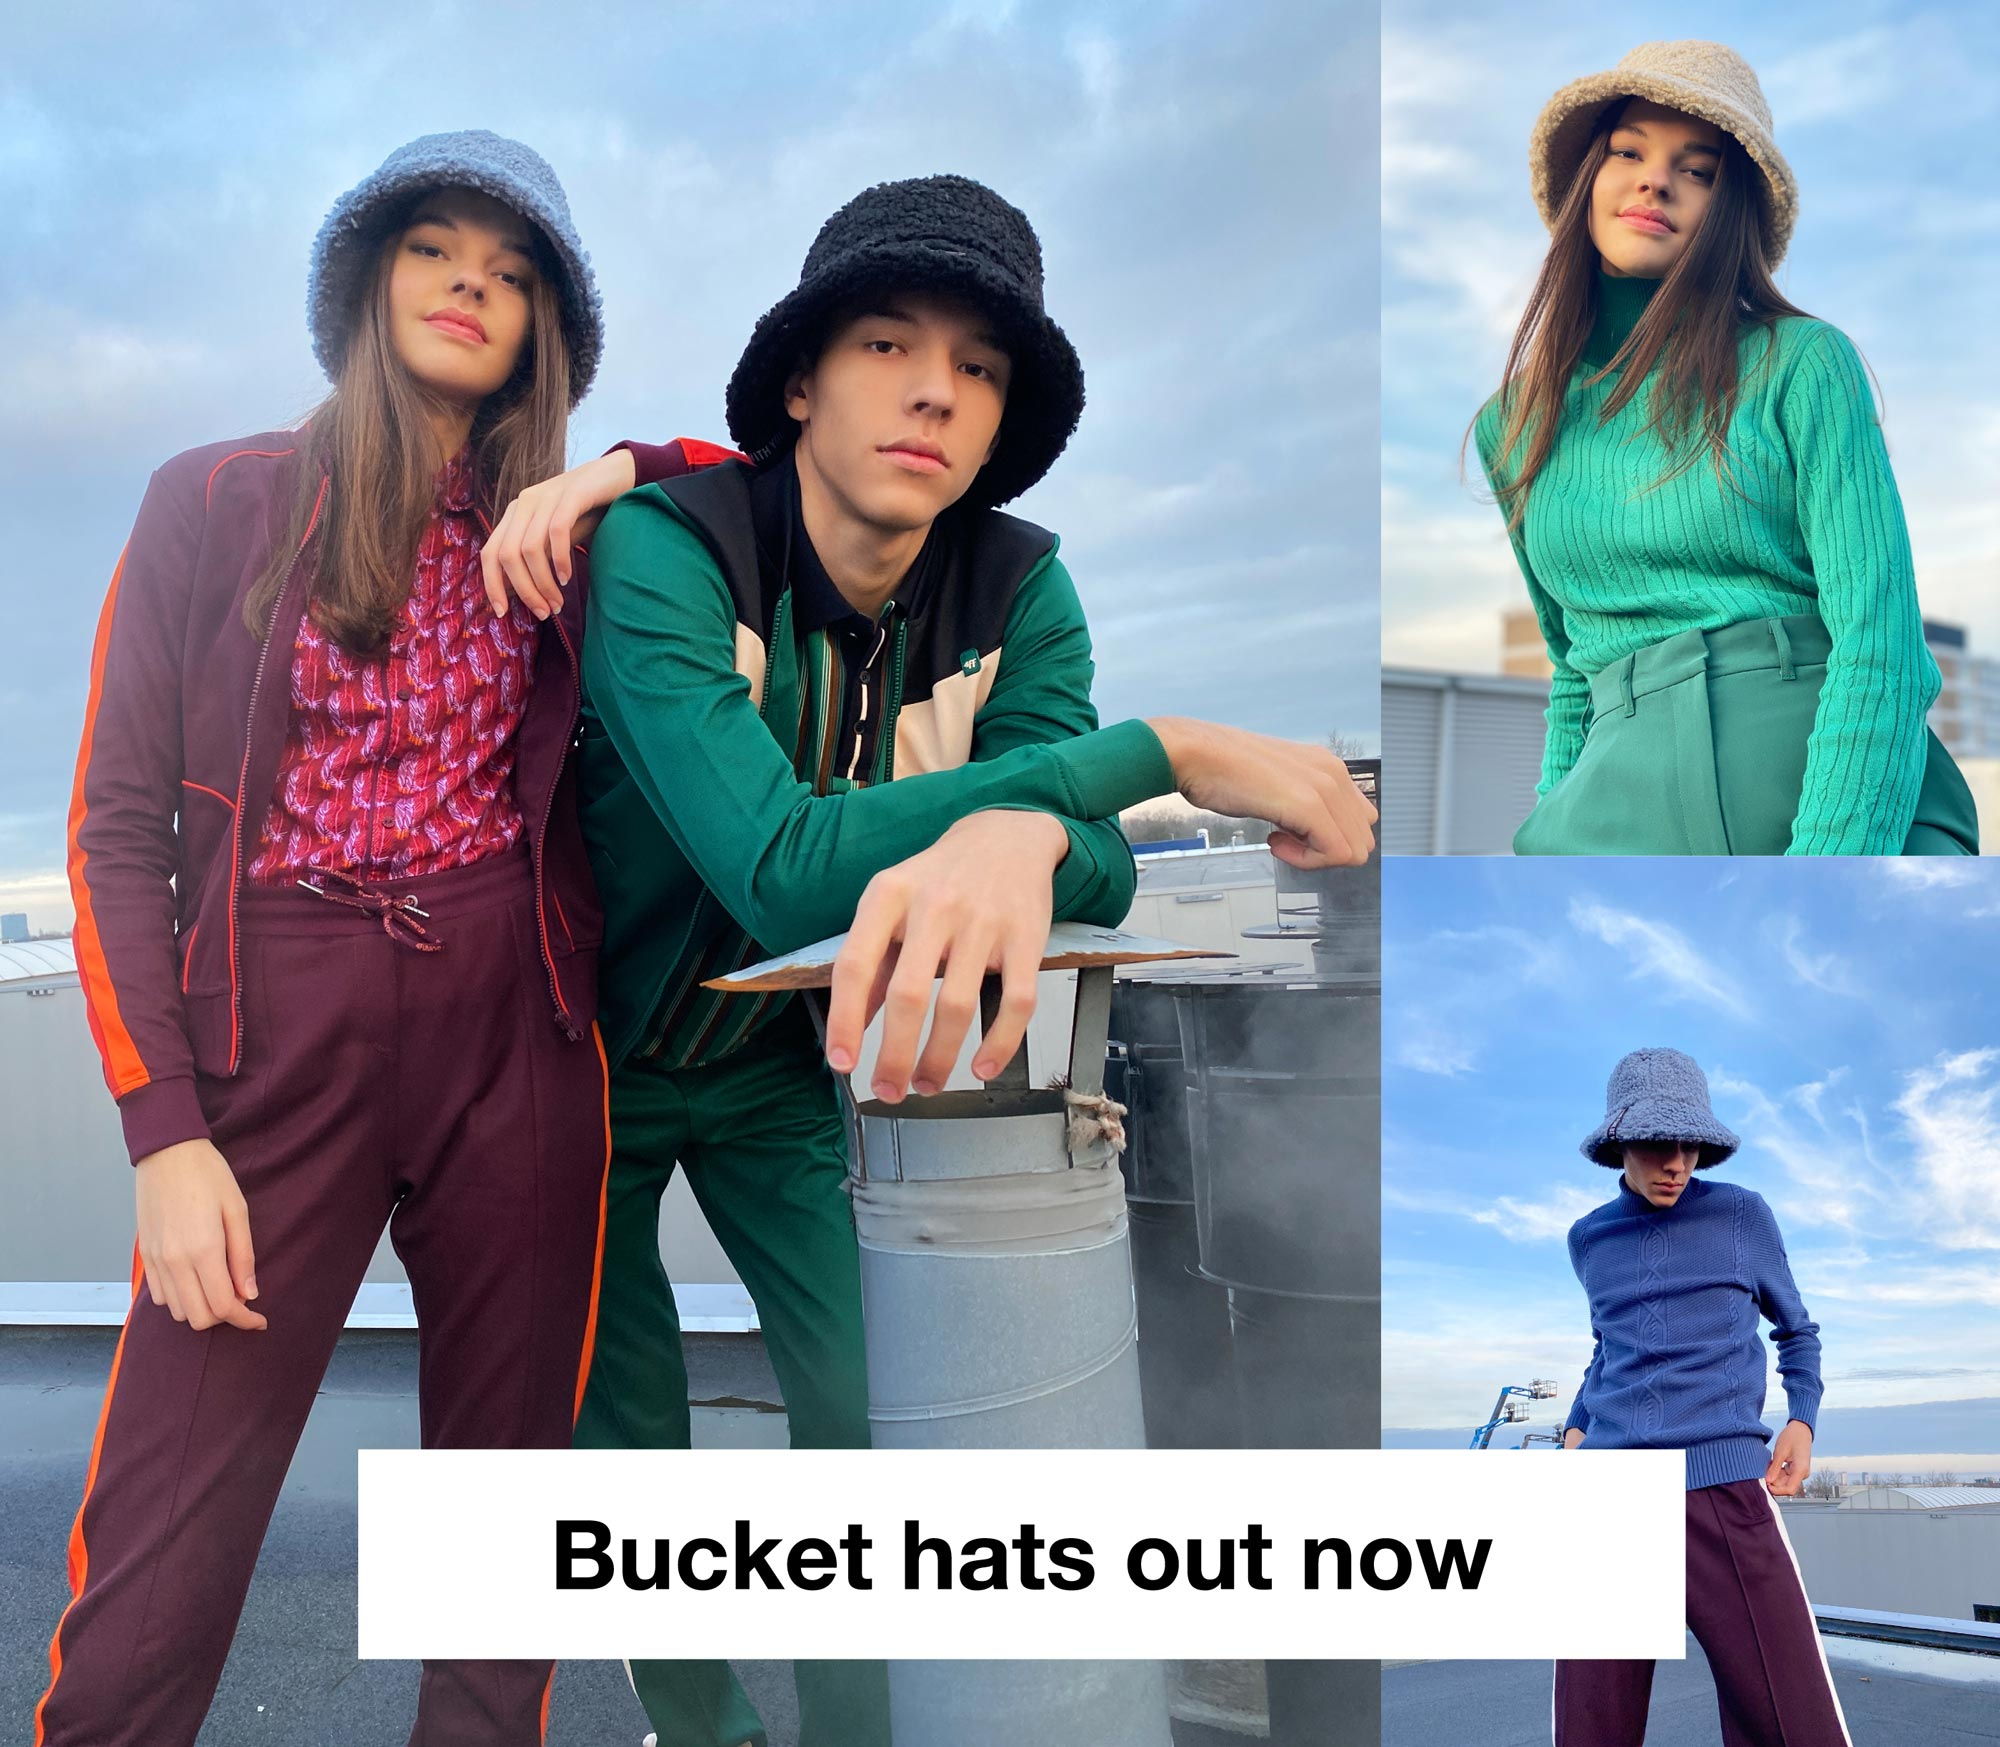 Bucket hats out now!